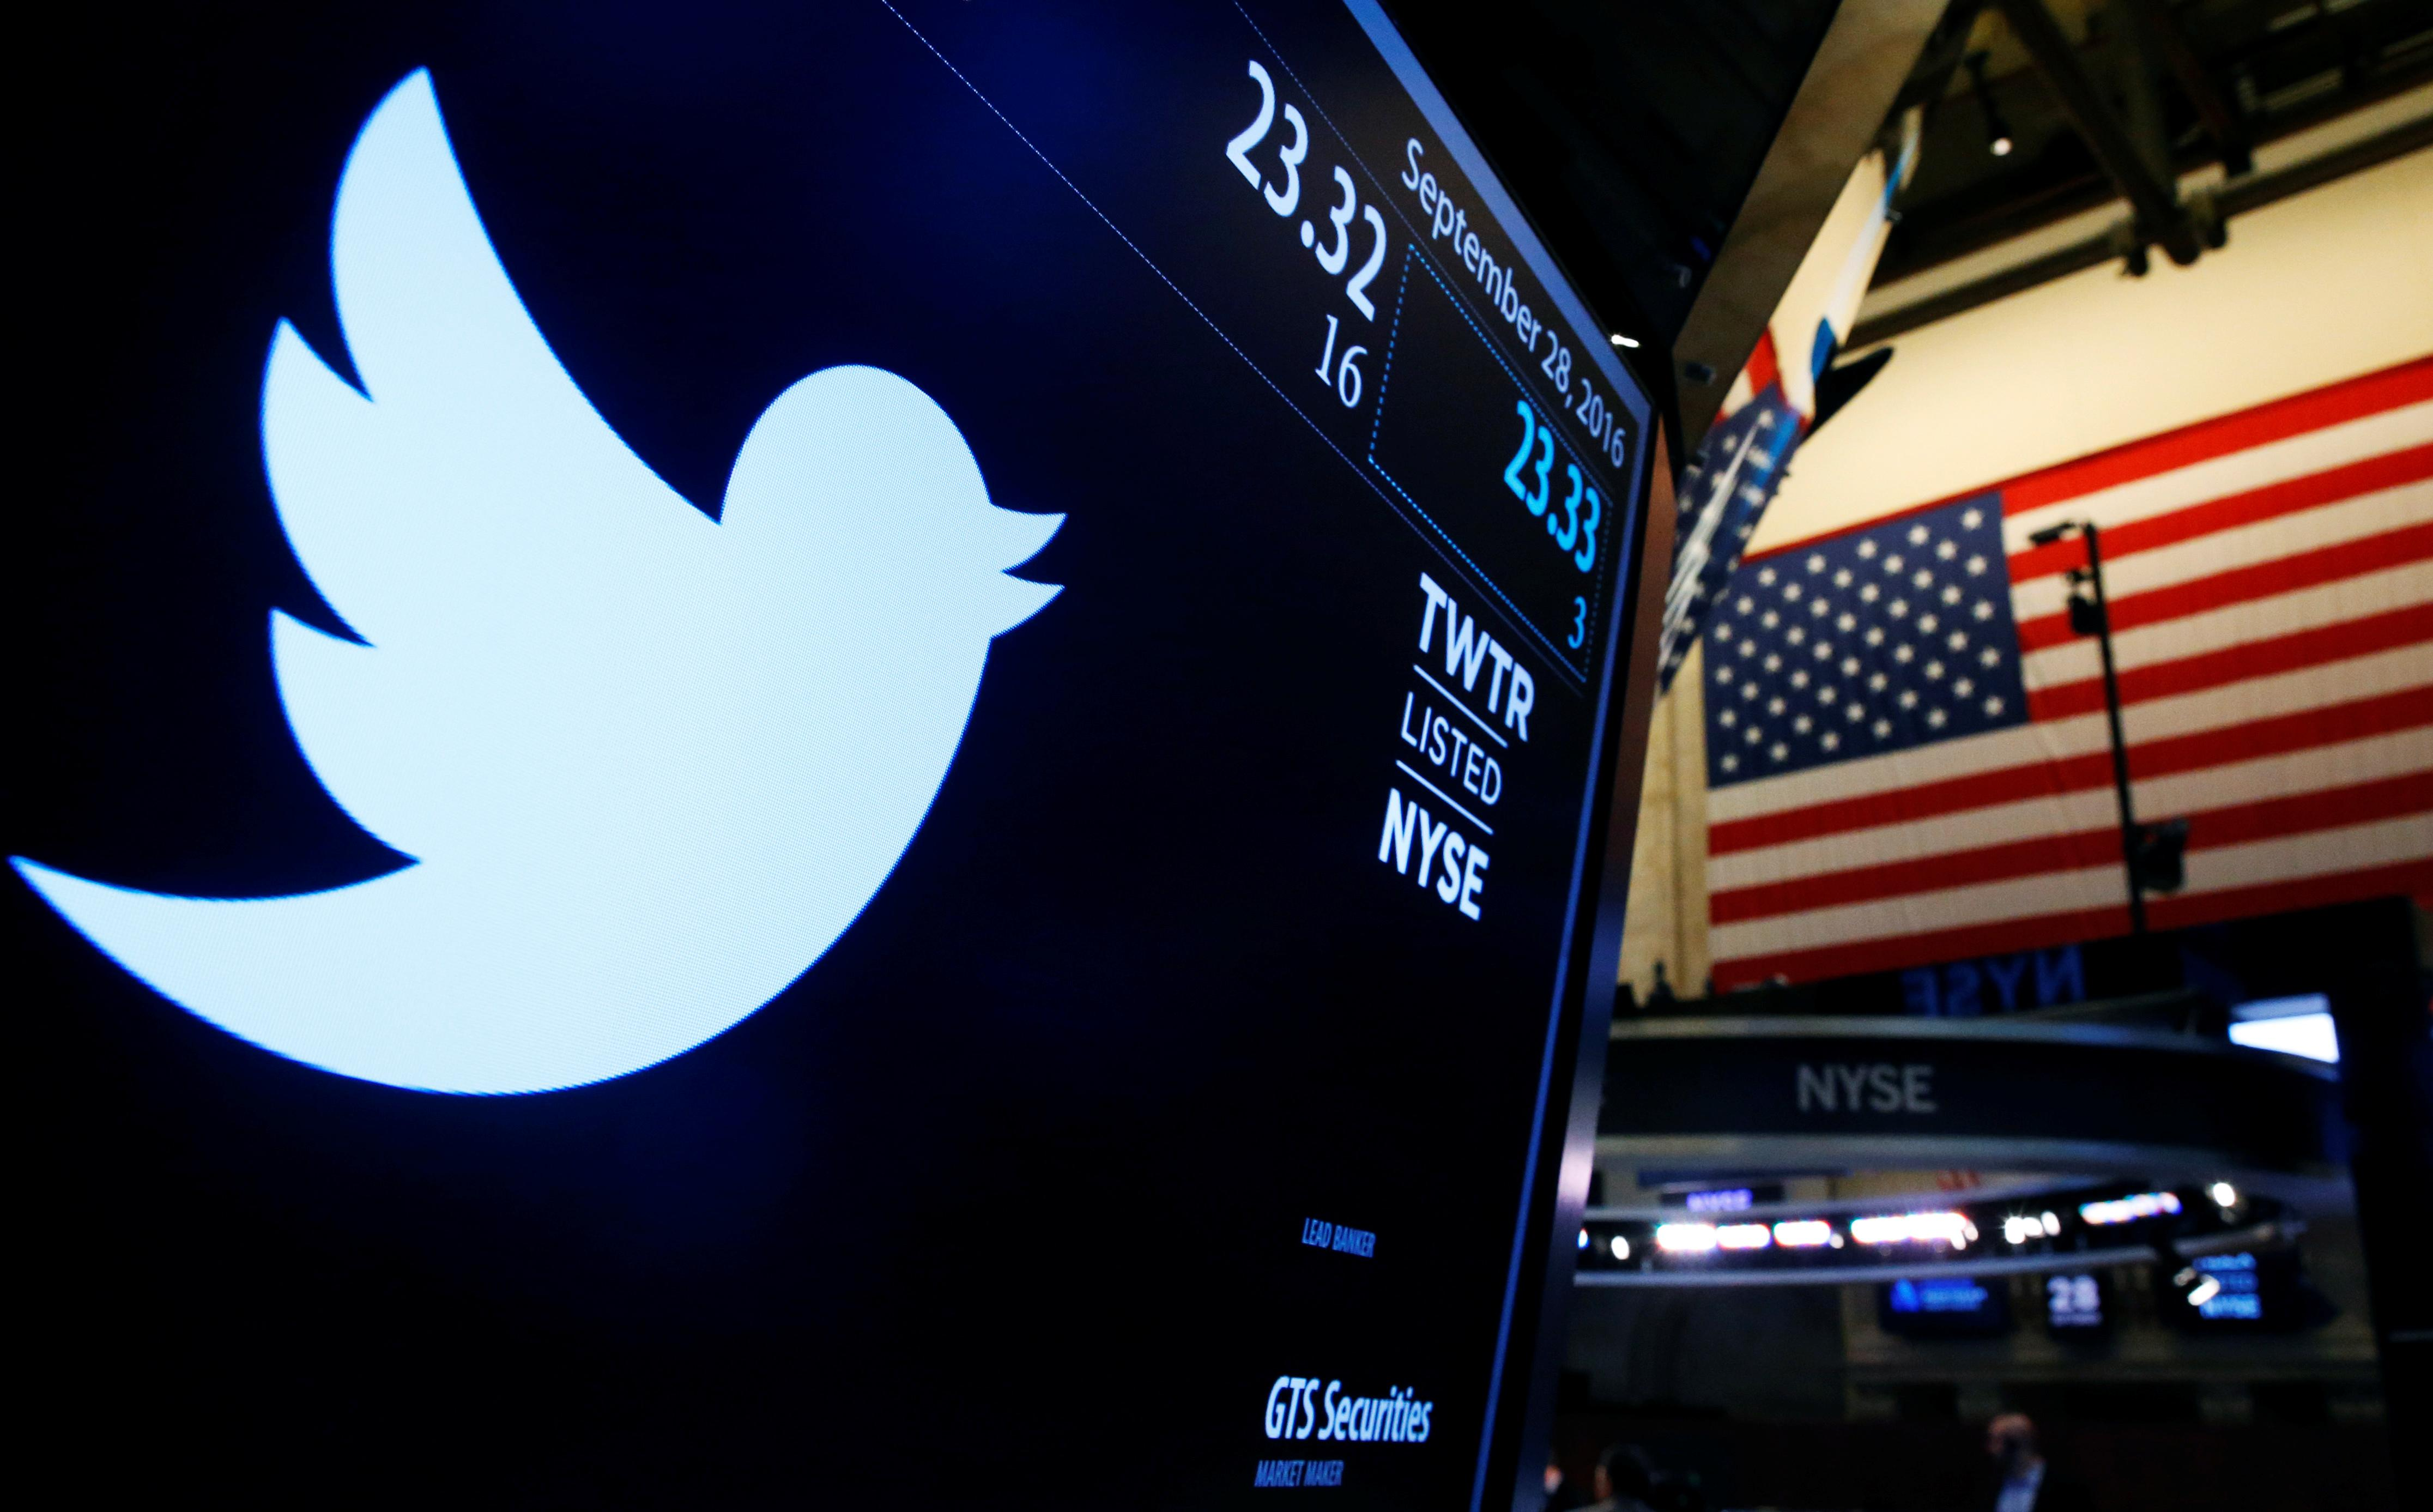 TWITTER-M&A/RESTRUCTURE